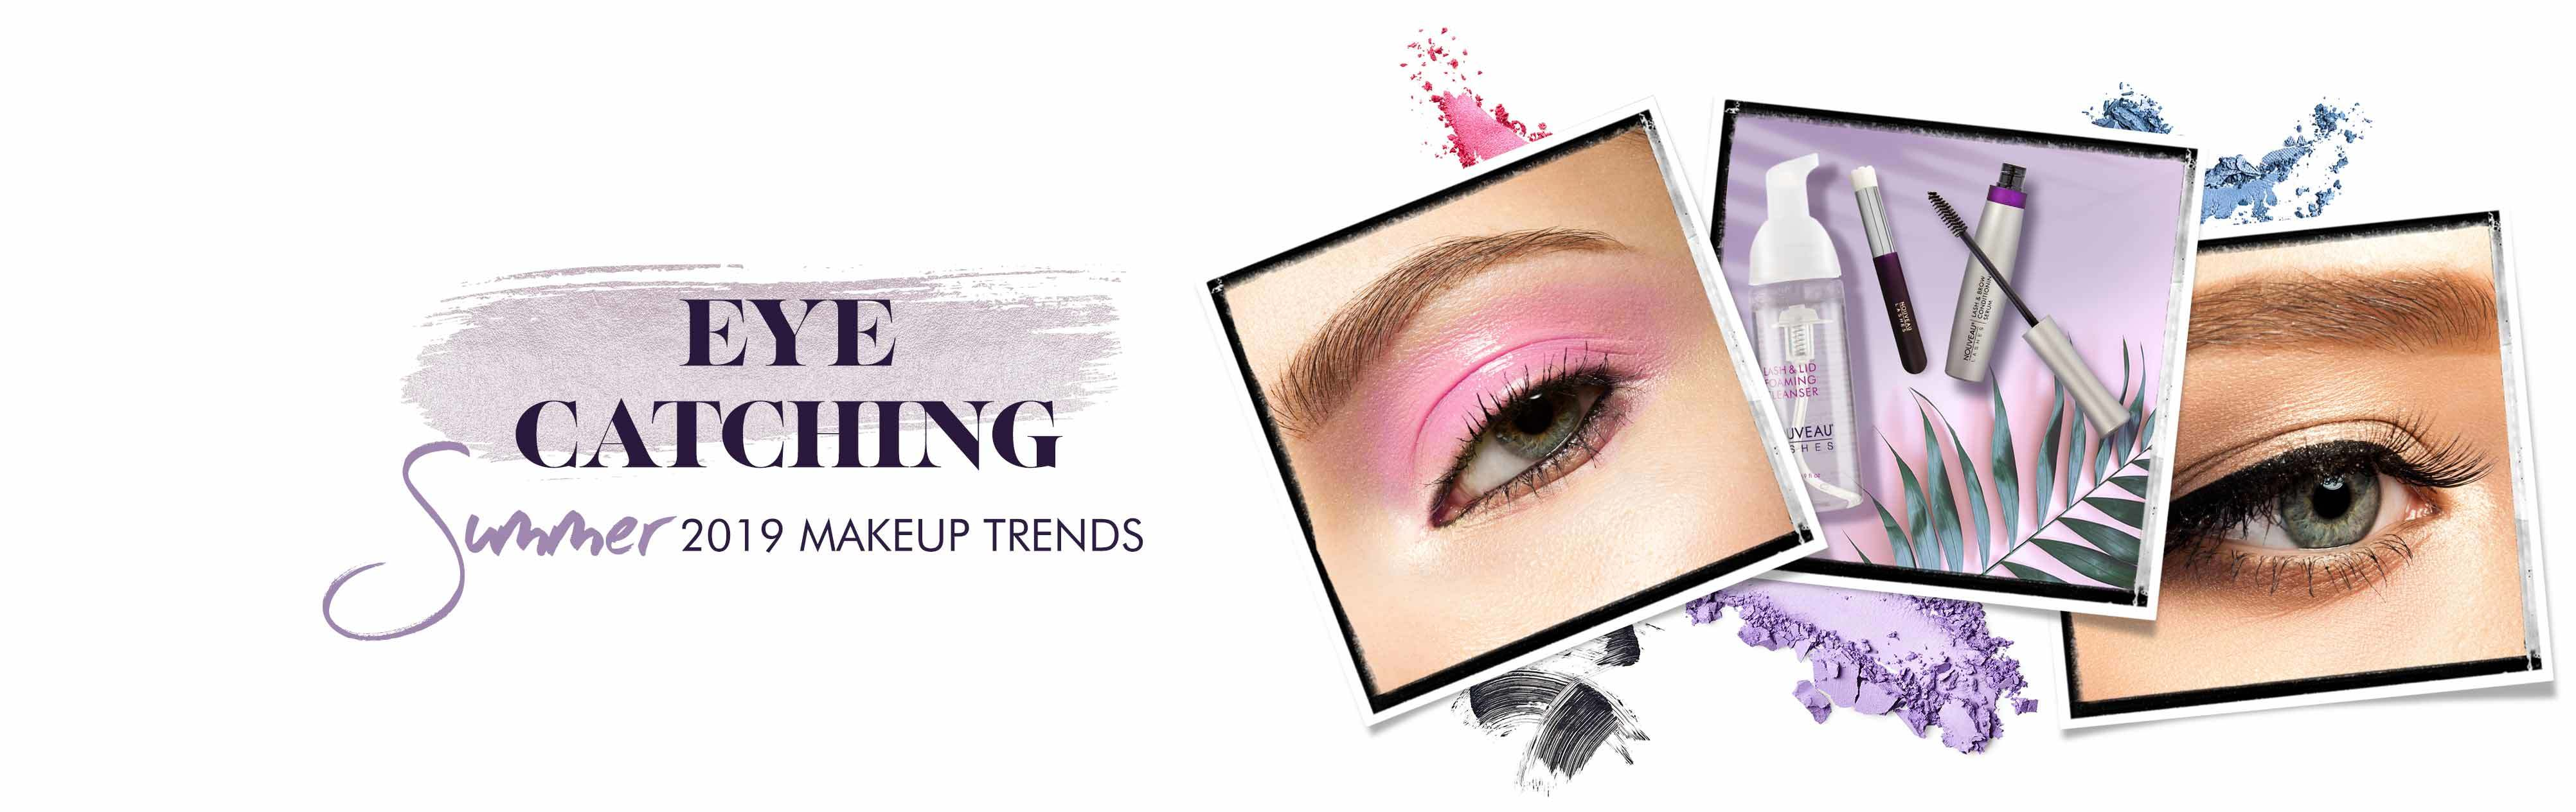 Eye Catching: Summer 2019 Makeup Trends